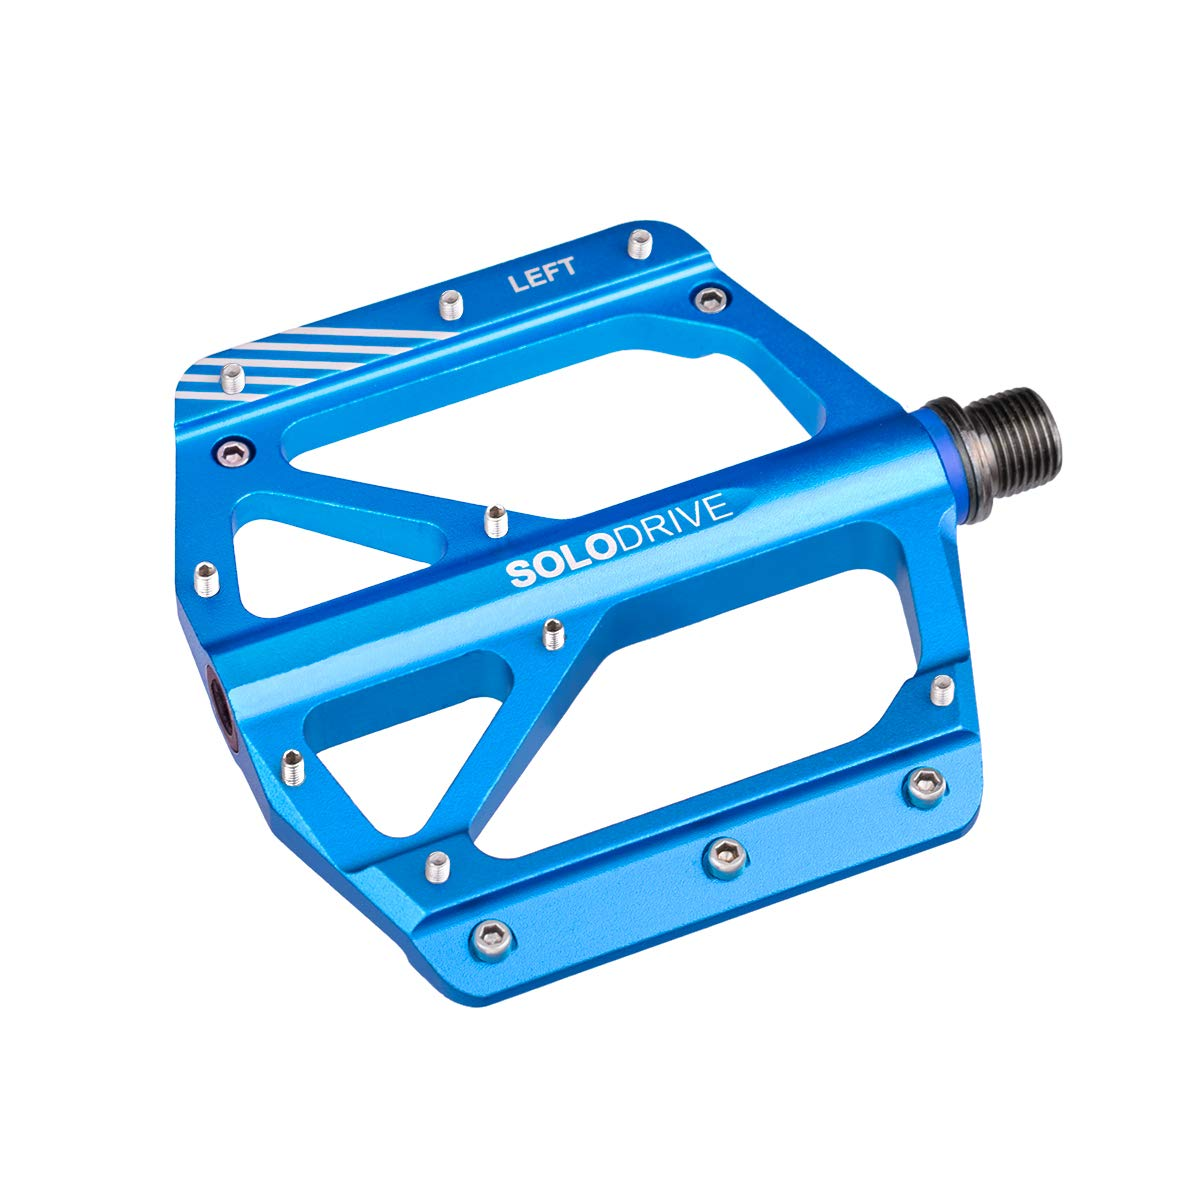 SOLODRIVE Mountain Bike Flat Pedals, Low-Profile Aluminium Alloy Bicycle Pedals, Light Weight and Thin Platform(Blue)